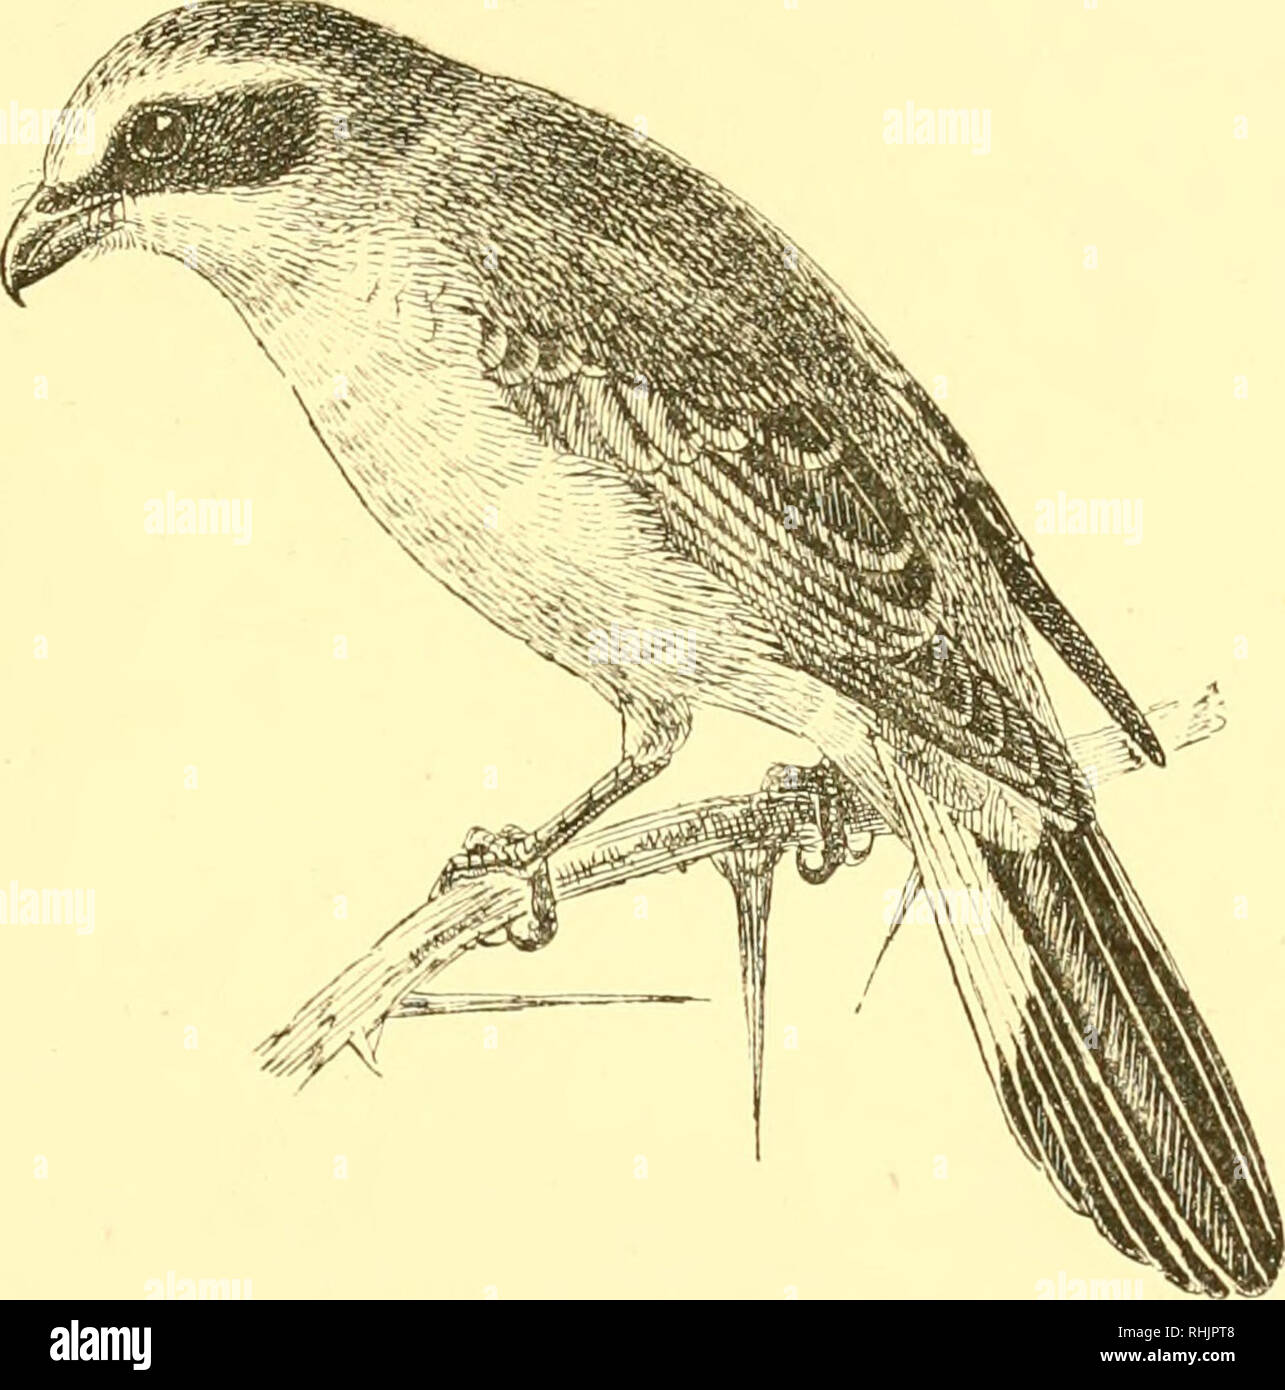 . Birds: the elements of ornithology ; with 174 illustrations whereof 140 are original drawings. Birds; Birds. IN TBODTJCTION. 121 occasioual visitant to this country. It feeds on mice, small birds, frogs, lizards, and various insects. The commonest species of the genus is the Red-backed Shrike or Butcher-bird {Lcmius coUurio), and may serve as our type.of the whole group. The name of Butcher-bird has been no doubt occasioned from the curious habit it has of impaling its prey upon sharp thorns or fixing them into clefts. I'ragments of its victims, pieces of skin, with bleached bones of birds o - Stock Image